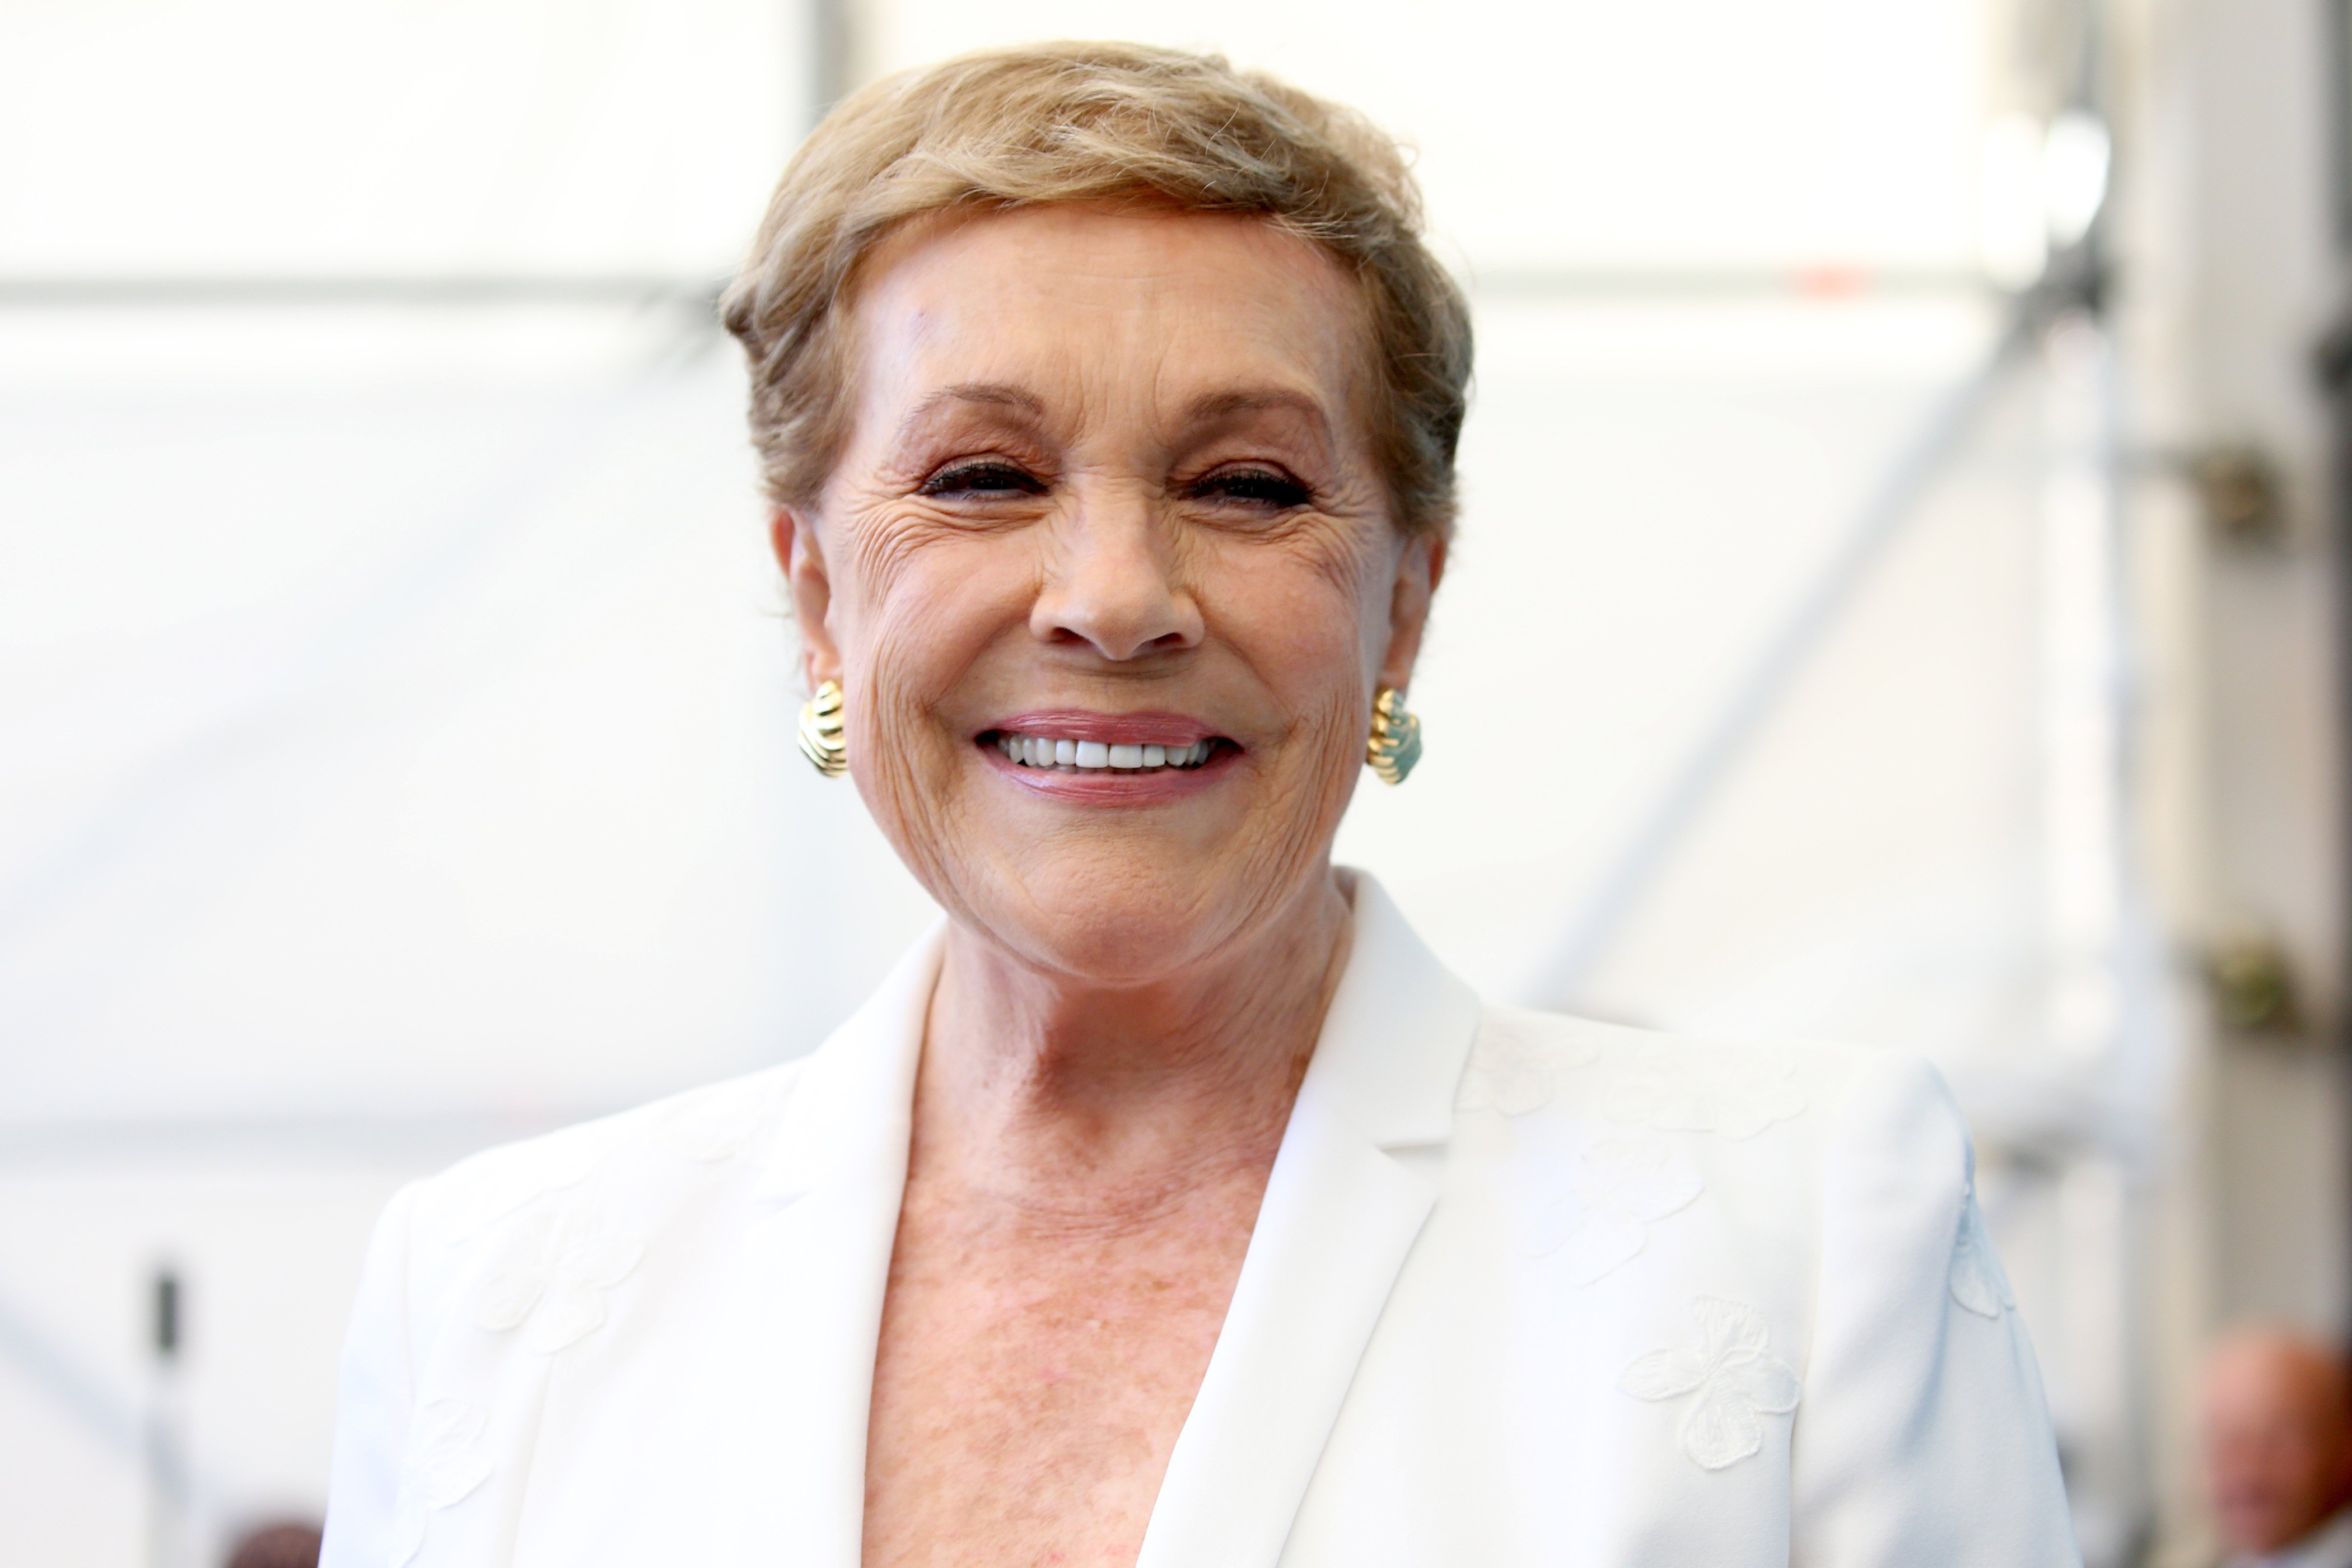 Julie Andrews attends the Venice Film Festival in Italy on September 3, 2019 | Photo: Getty images